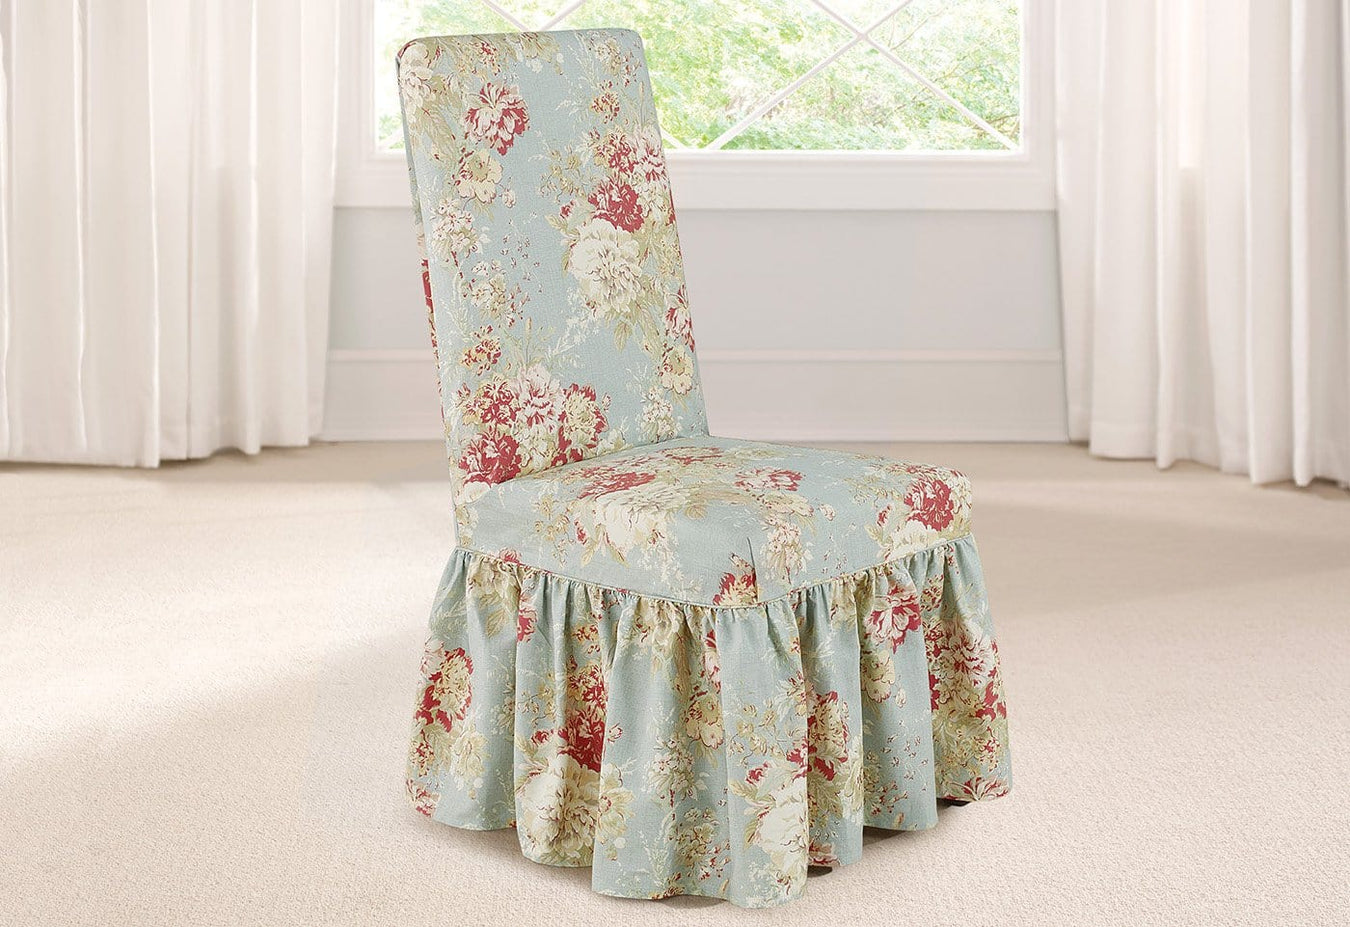 Peachy Ballad Bouquet By Waverly Long Dining Chair Slipcover 100 Cotton Machine Washable Uwap Interior Chair Design Uwaporg